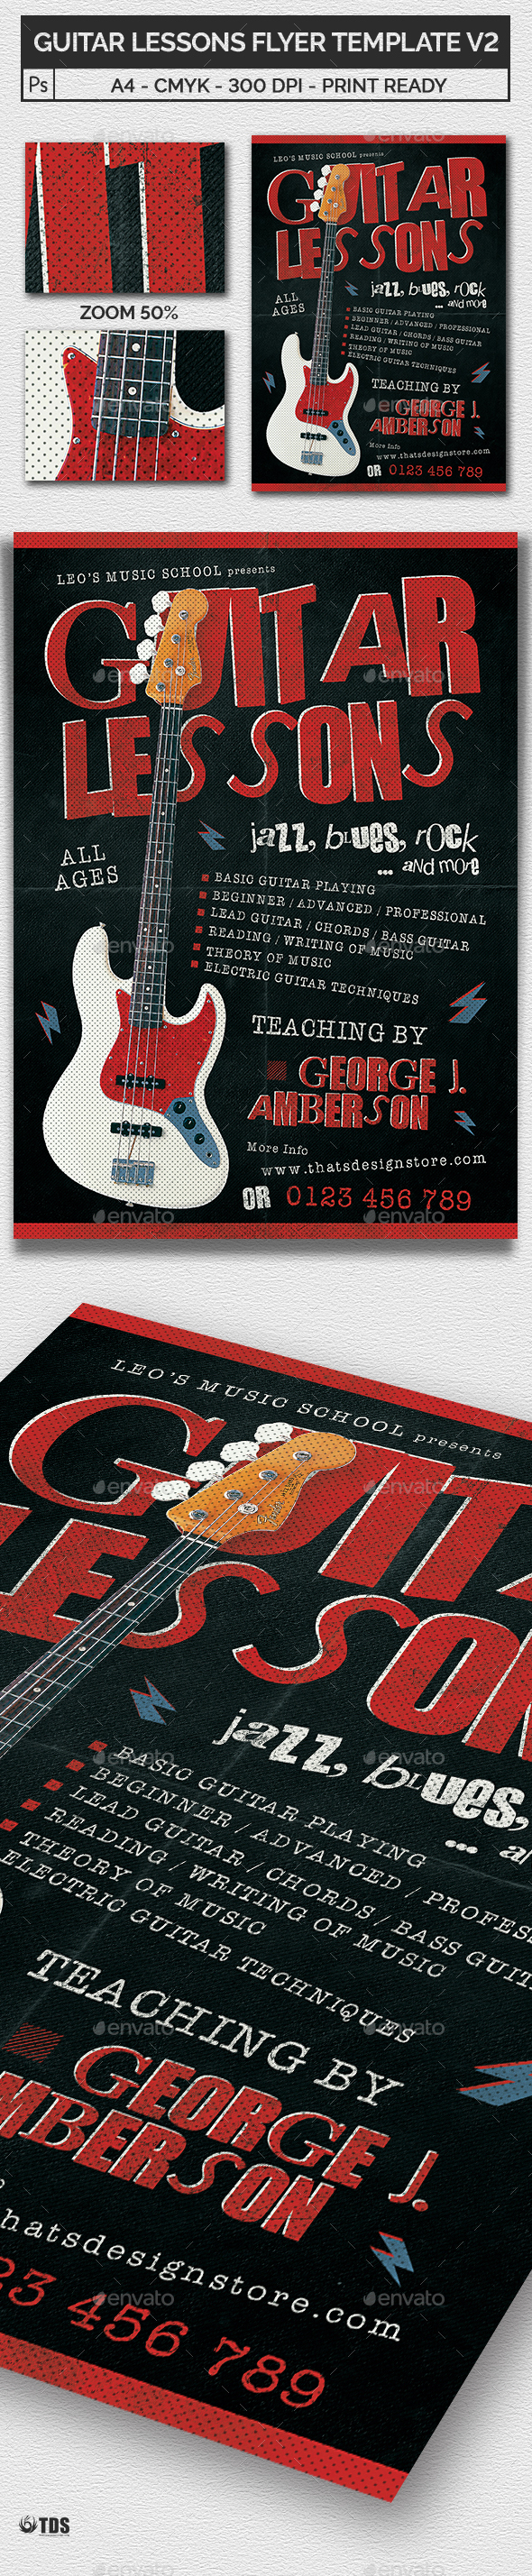 Guitar Lessons Flyer Template V2 - Concerts Events